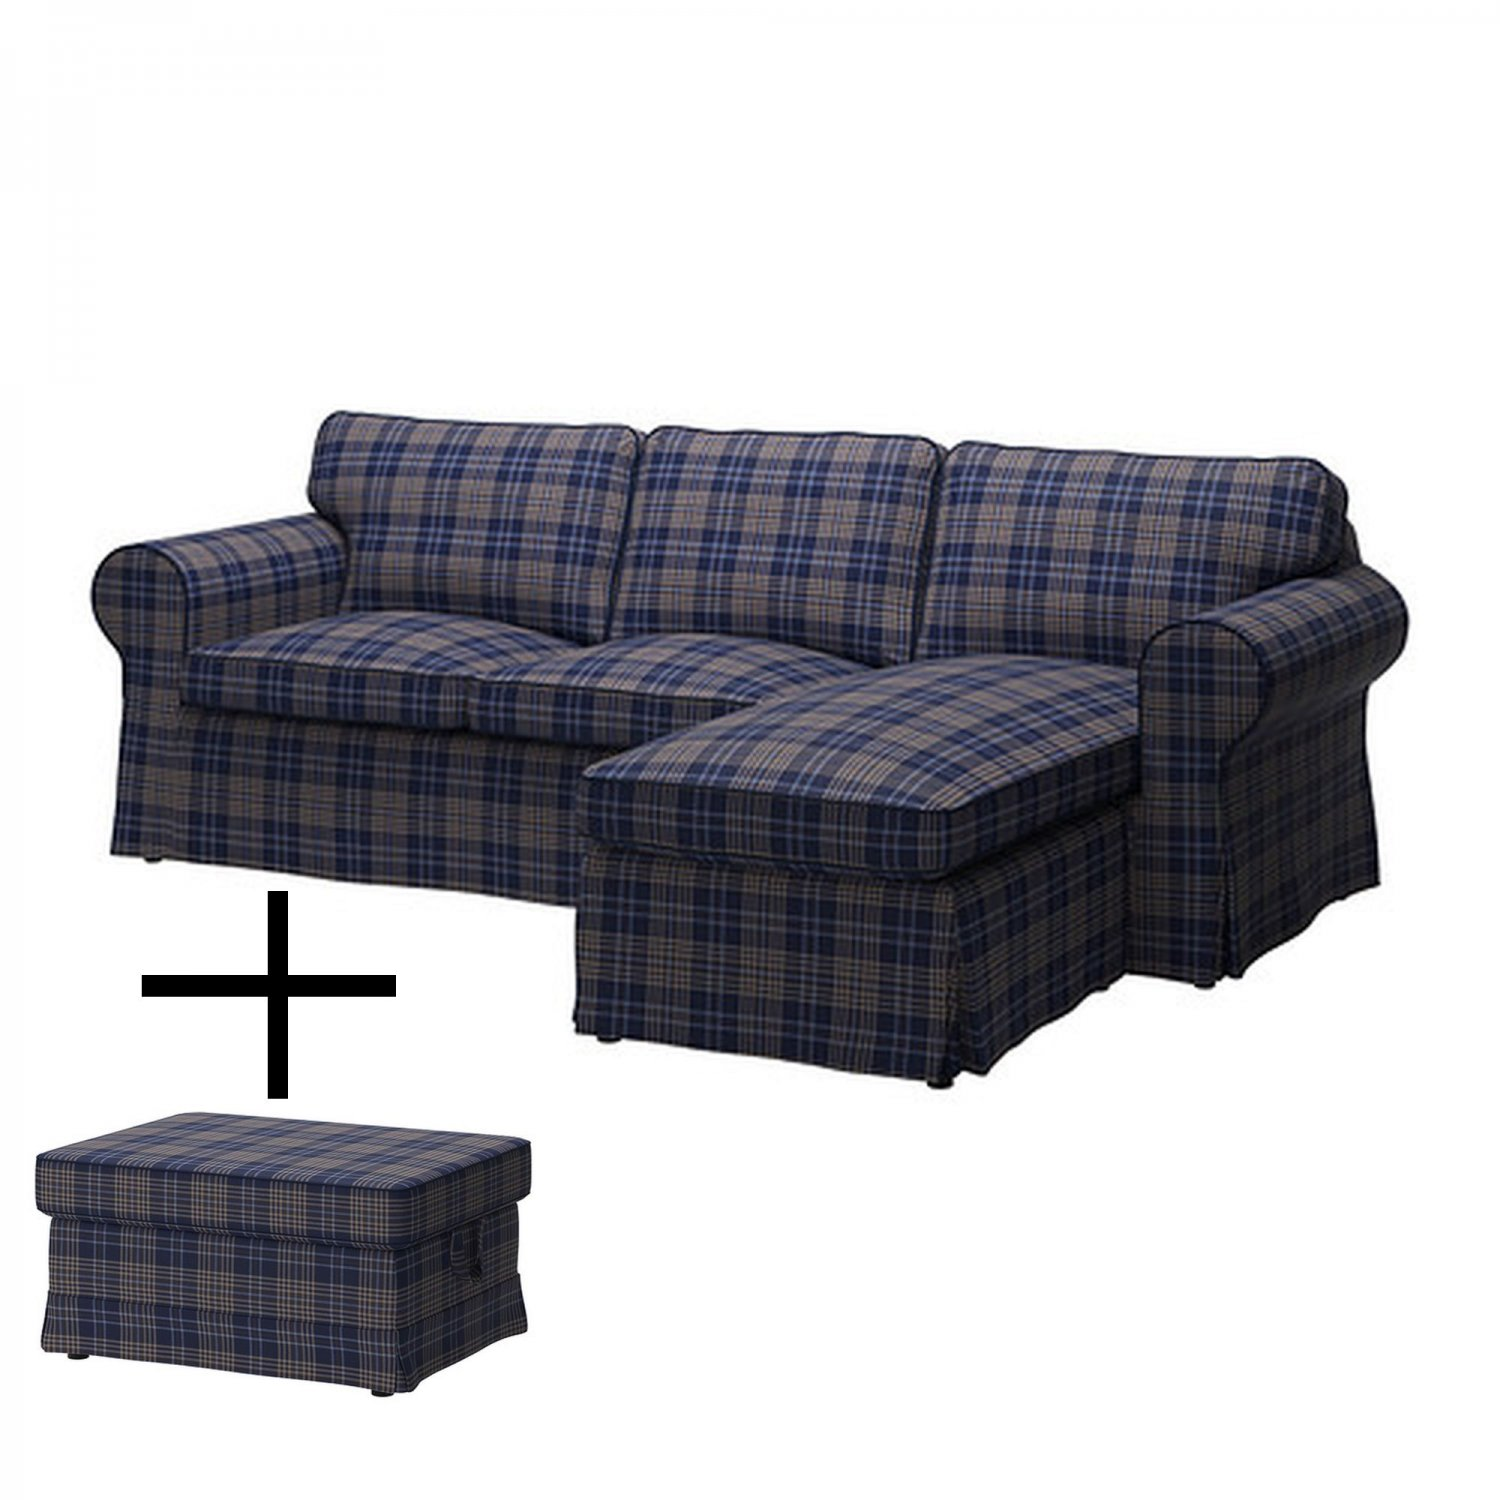 Ikea Ektorp Loveseat With Chaise And Footstool Cover Slipcover Rutna Multi Plaid Blue